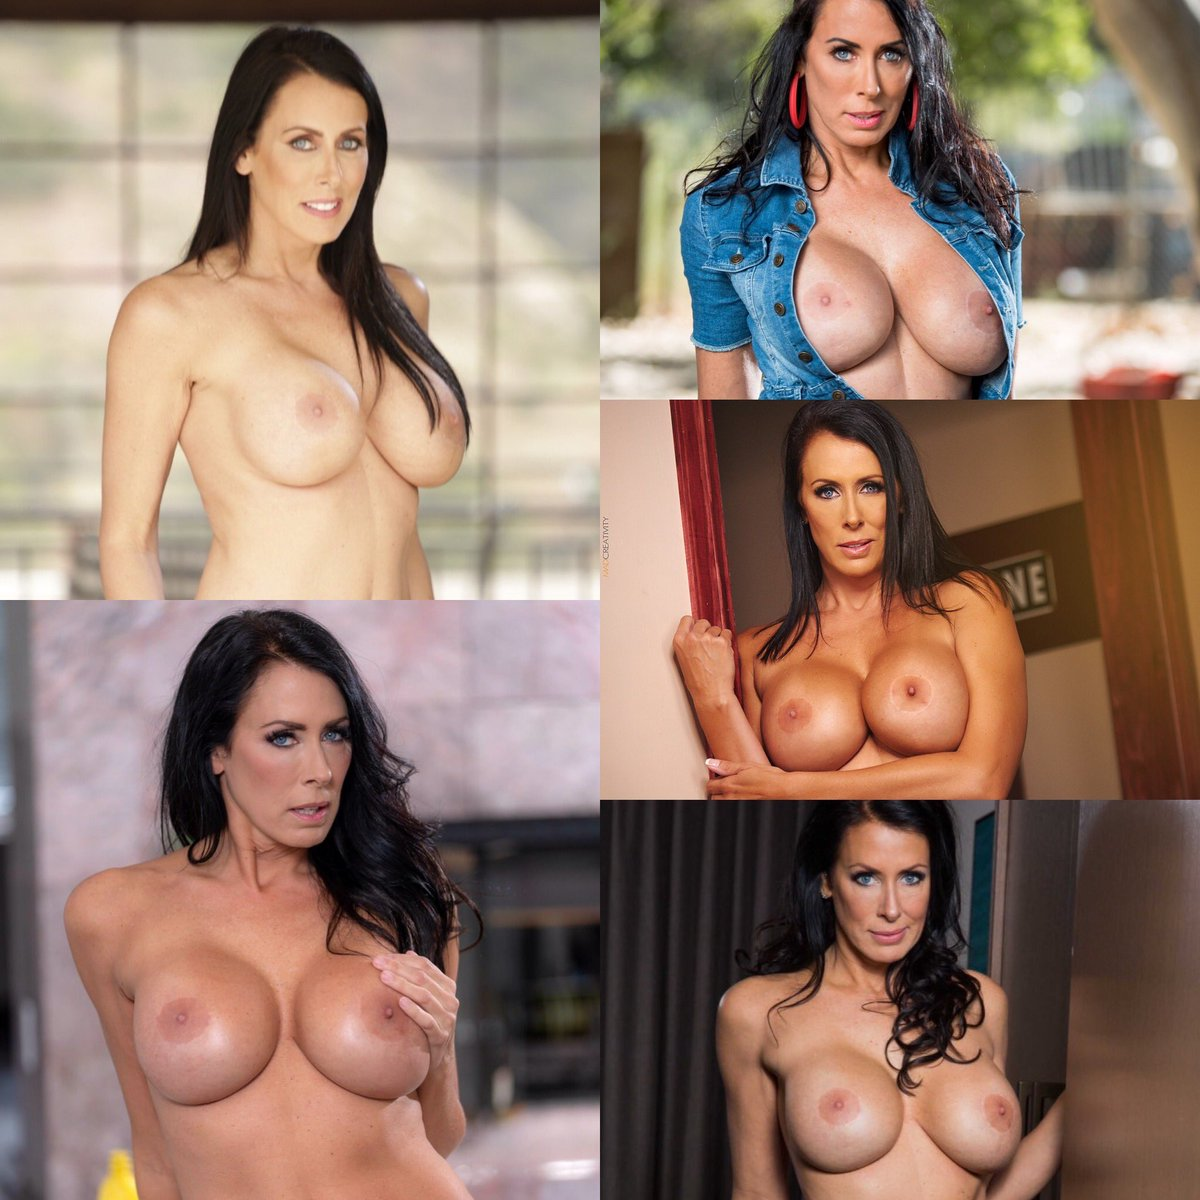 My fav pair of #BigTits #Boobs in the universe!! They belong to the #UltimateMILF #PornStar @TheReaganFoxx she is a #TittyTuesday MVP!! #FoxxNation 😘😍😈